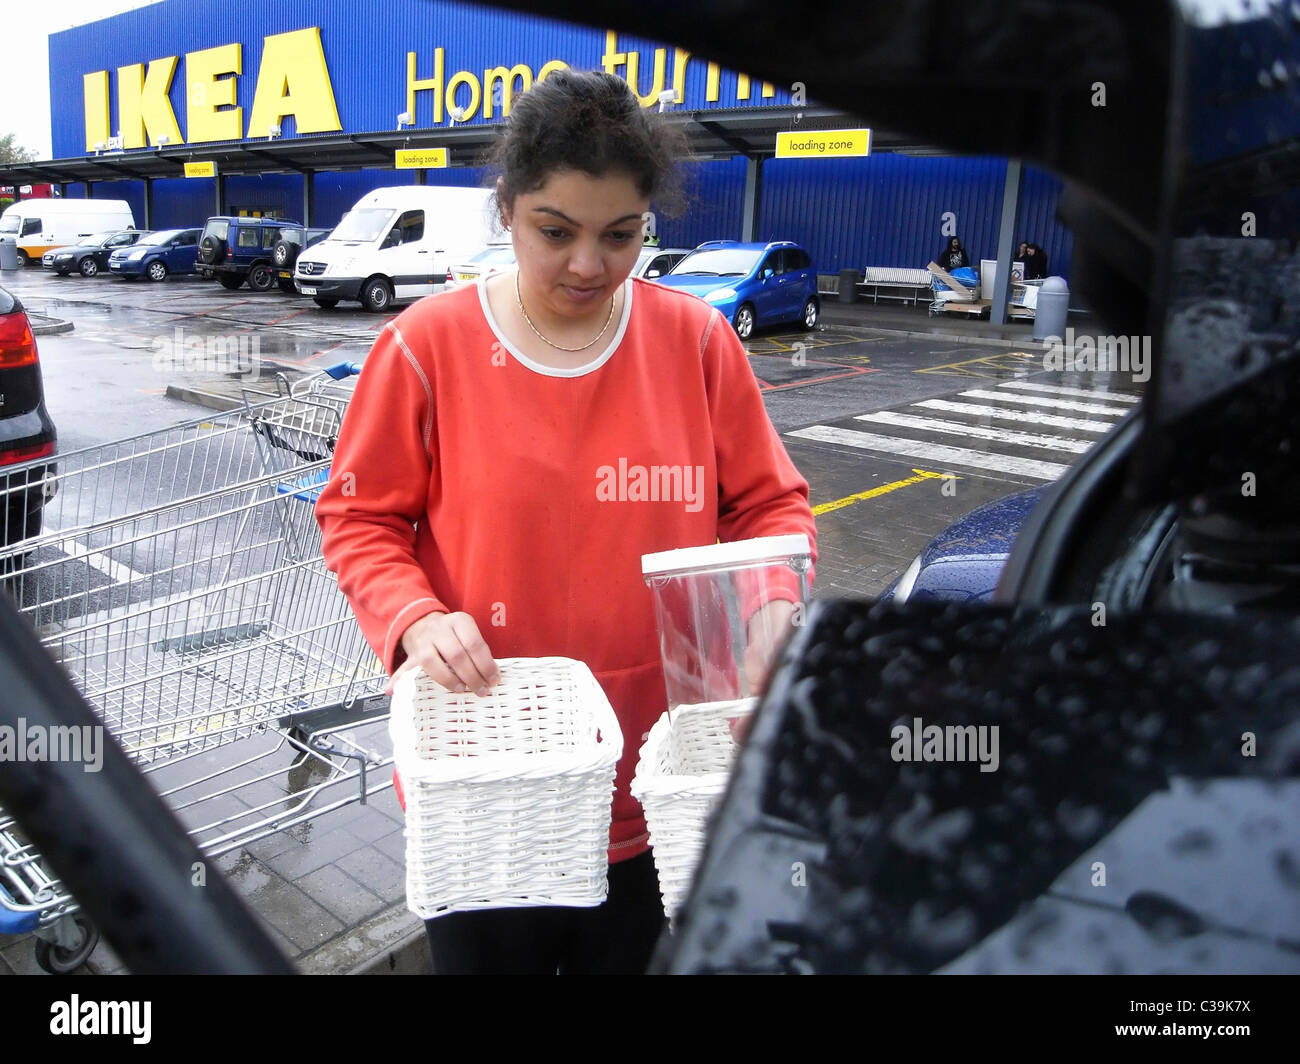 An Ikea customer loading her car with purchases. - Stock Image